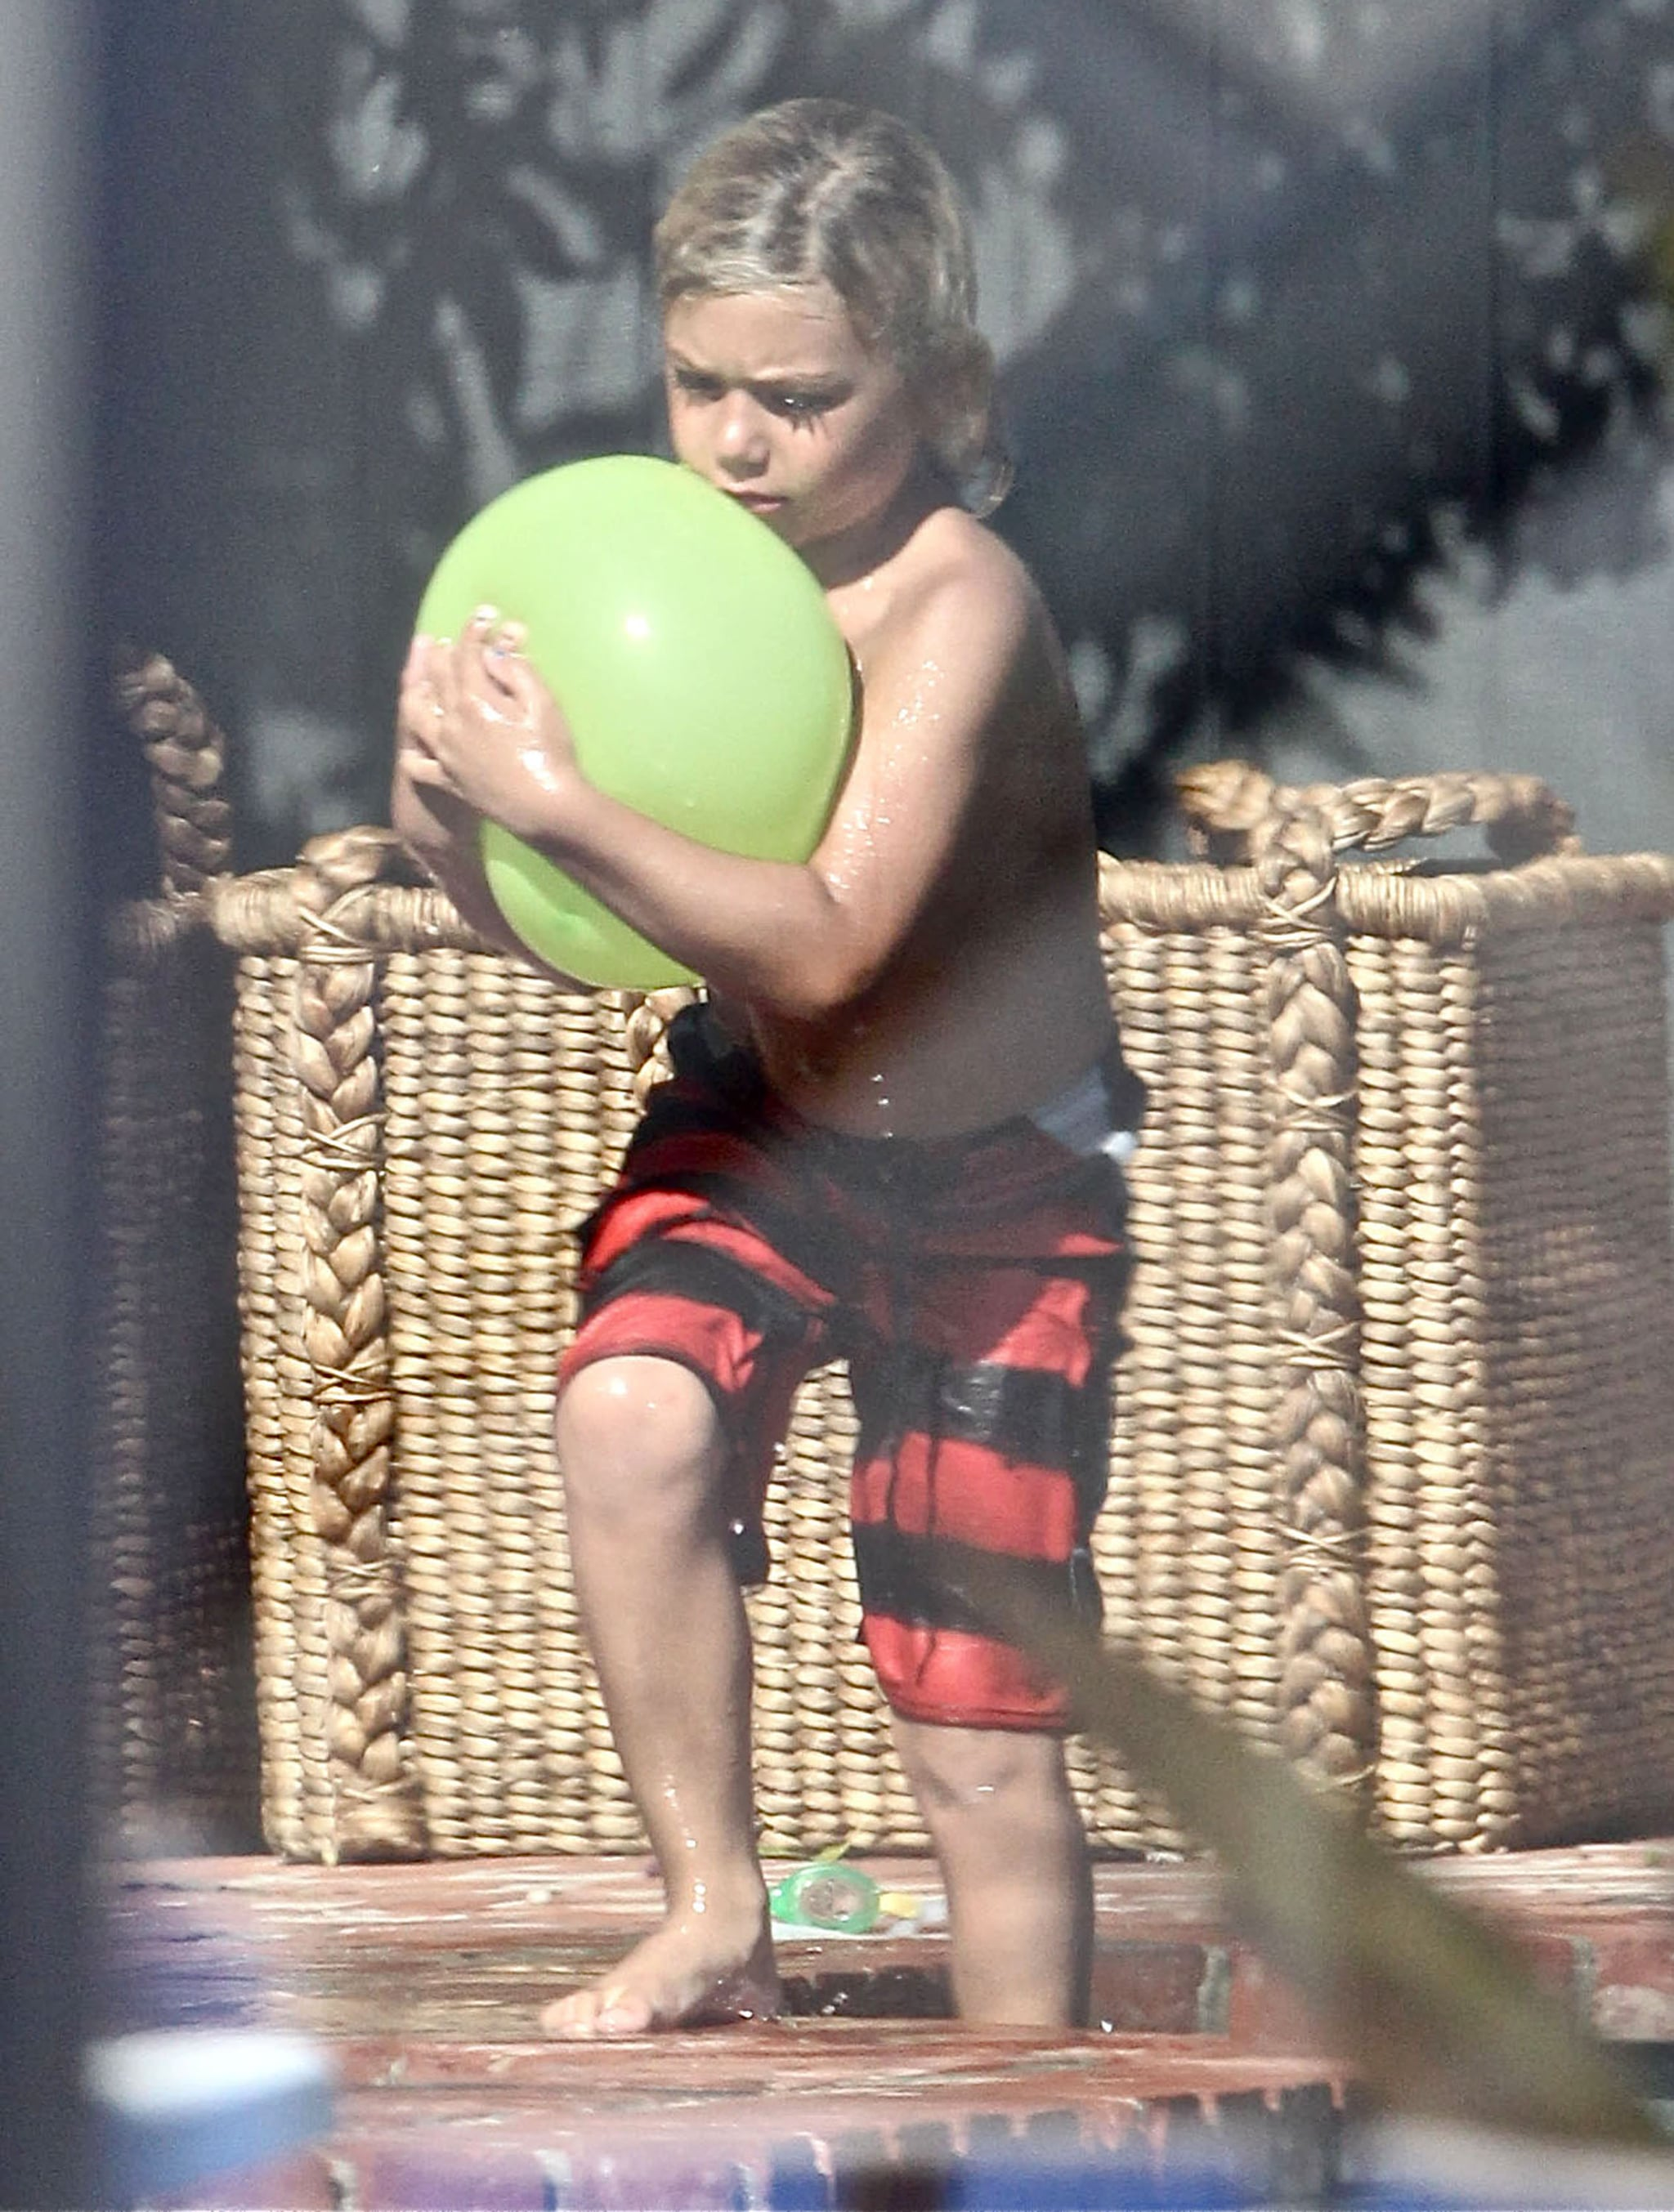 Kingston Rossdale had fun with water balloons at a Memorial Day party at Joel Silver's house in LA.